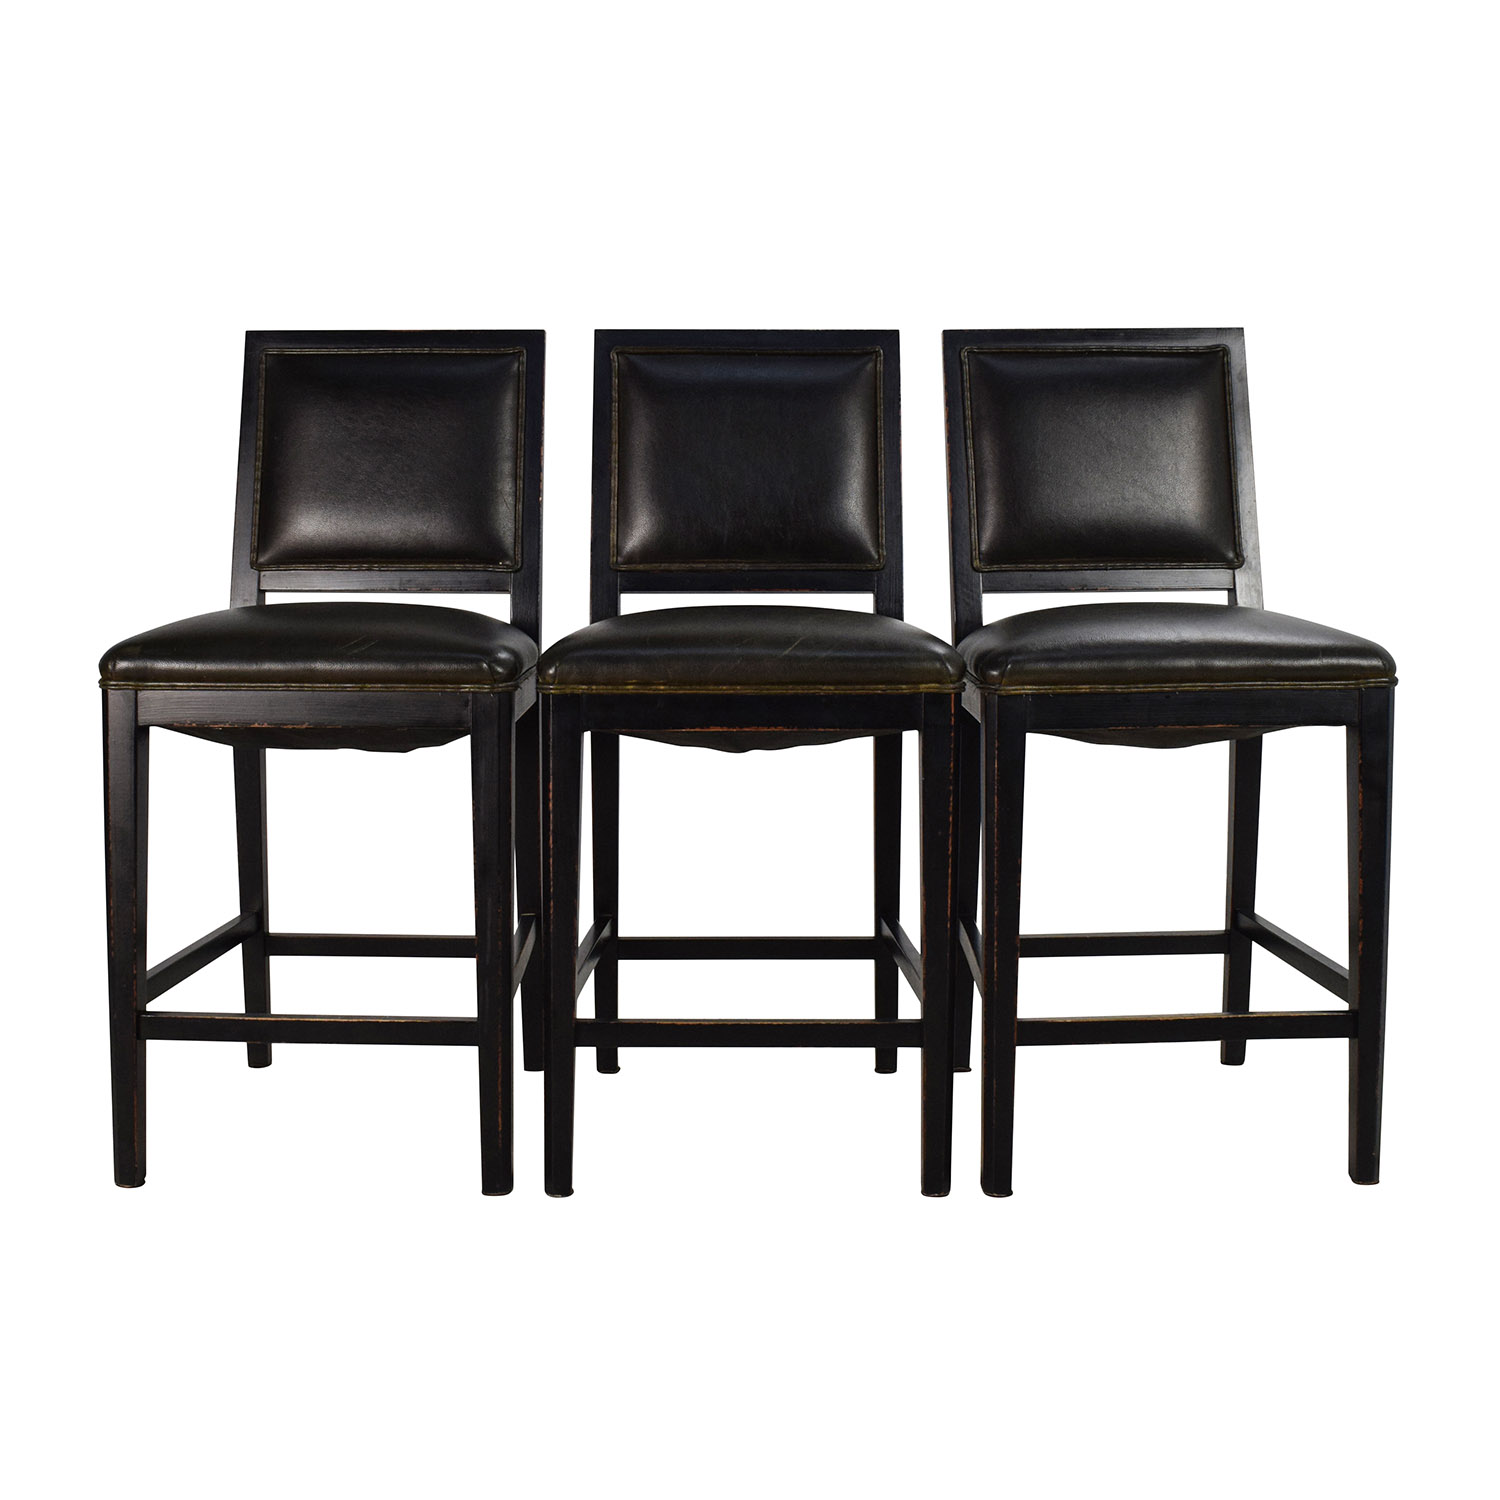 Crate and Barrel Crate & Barrel Leather High Chair Set on sale